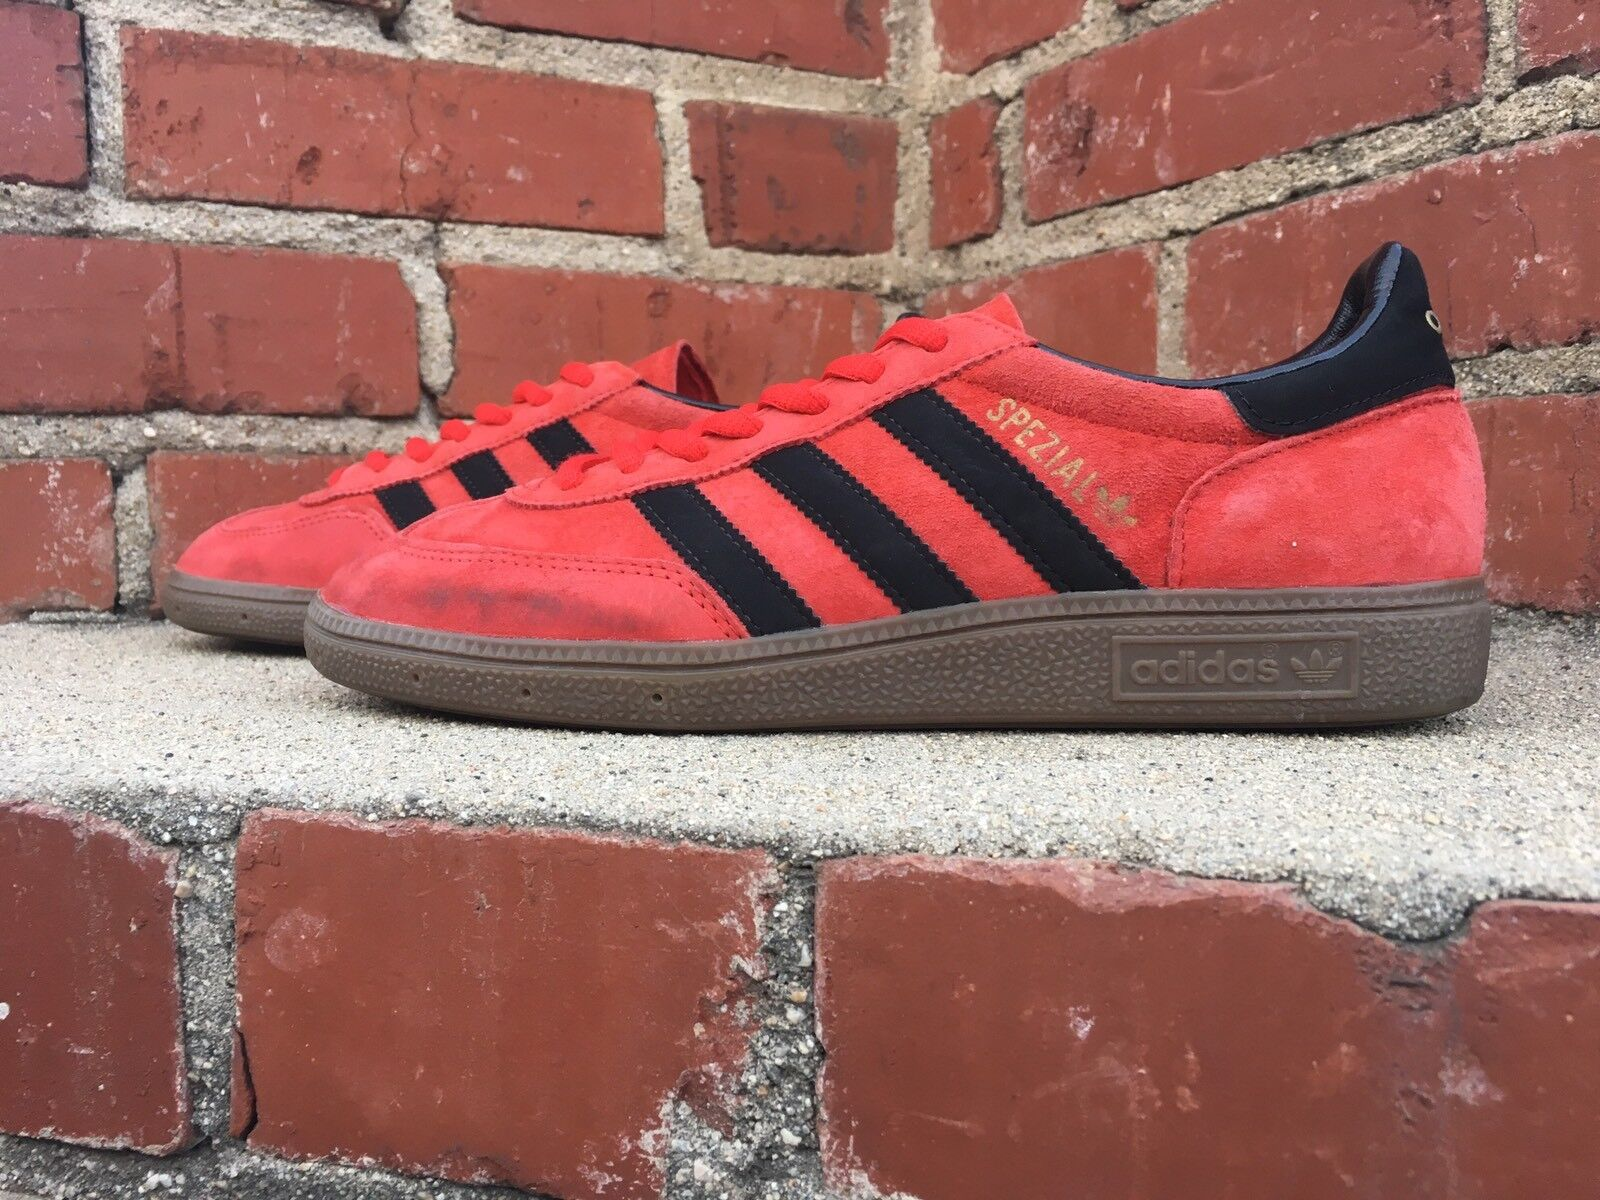 Adidas Spezial Red Black Gold with Gum Sole Casual Fashion Sneaker Style Q23094